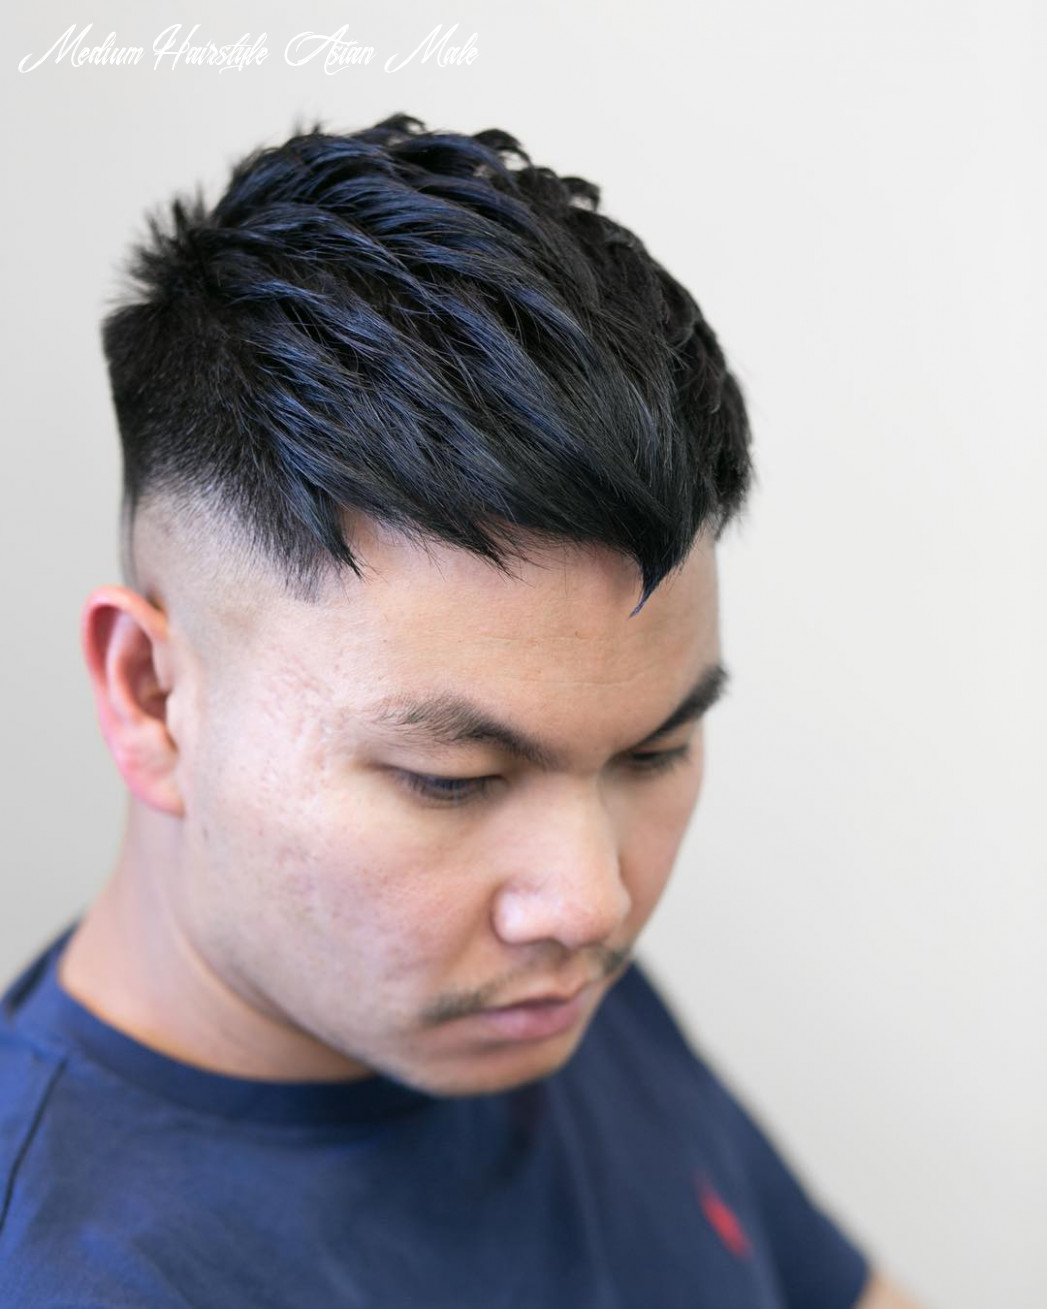 The 11 Best Asian Men's Hairstyles for 1111 - The Modest Man